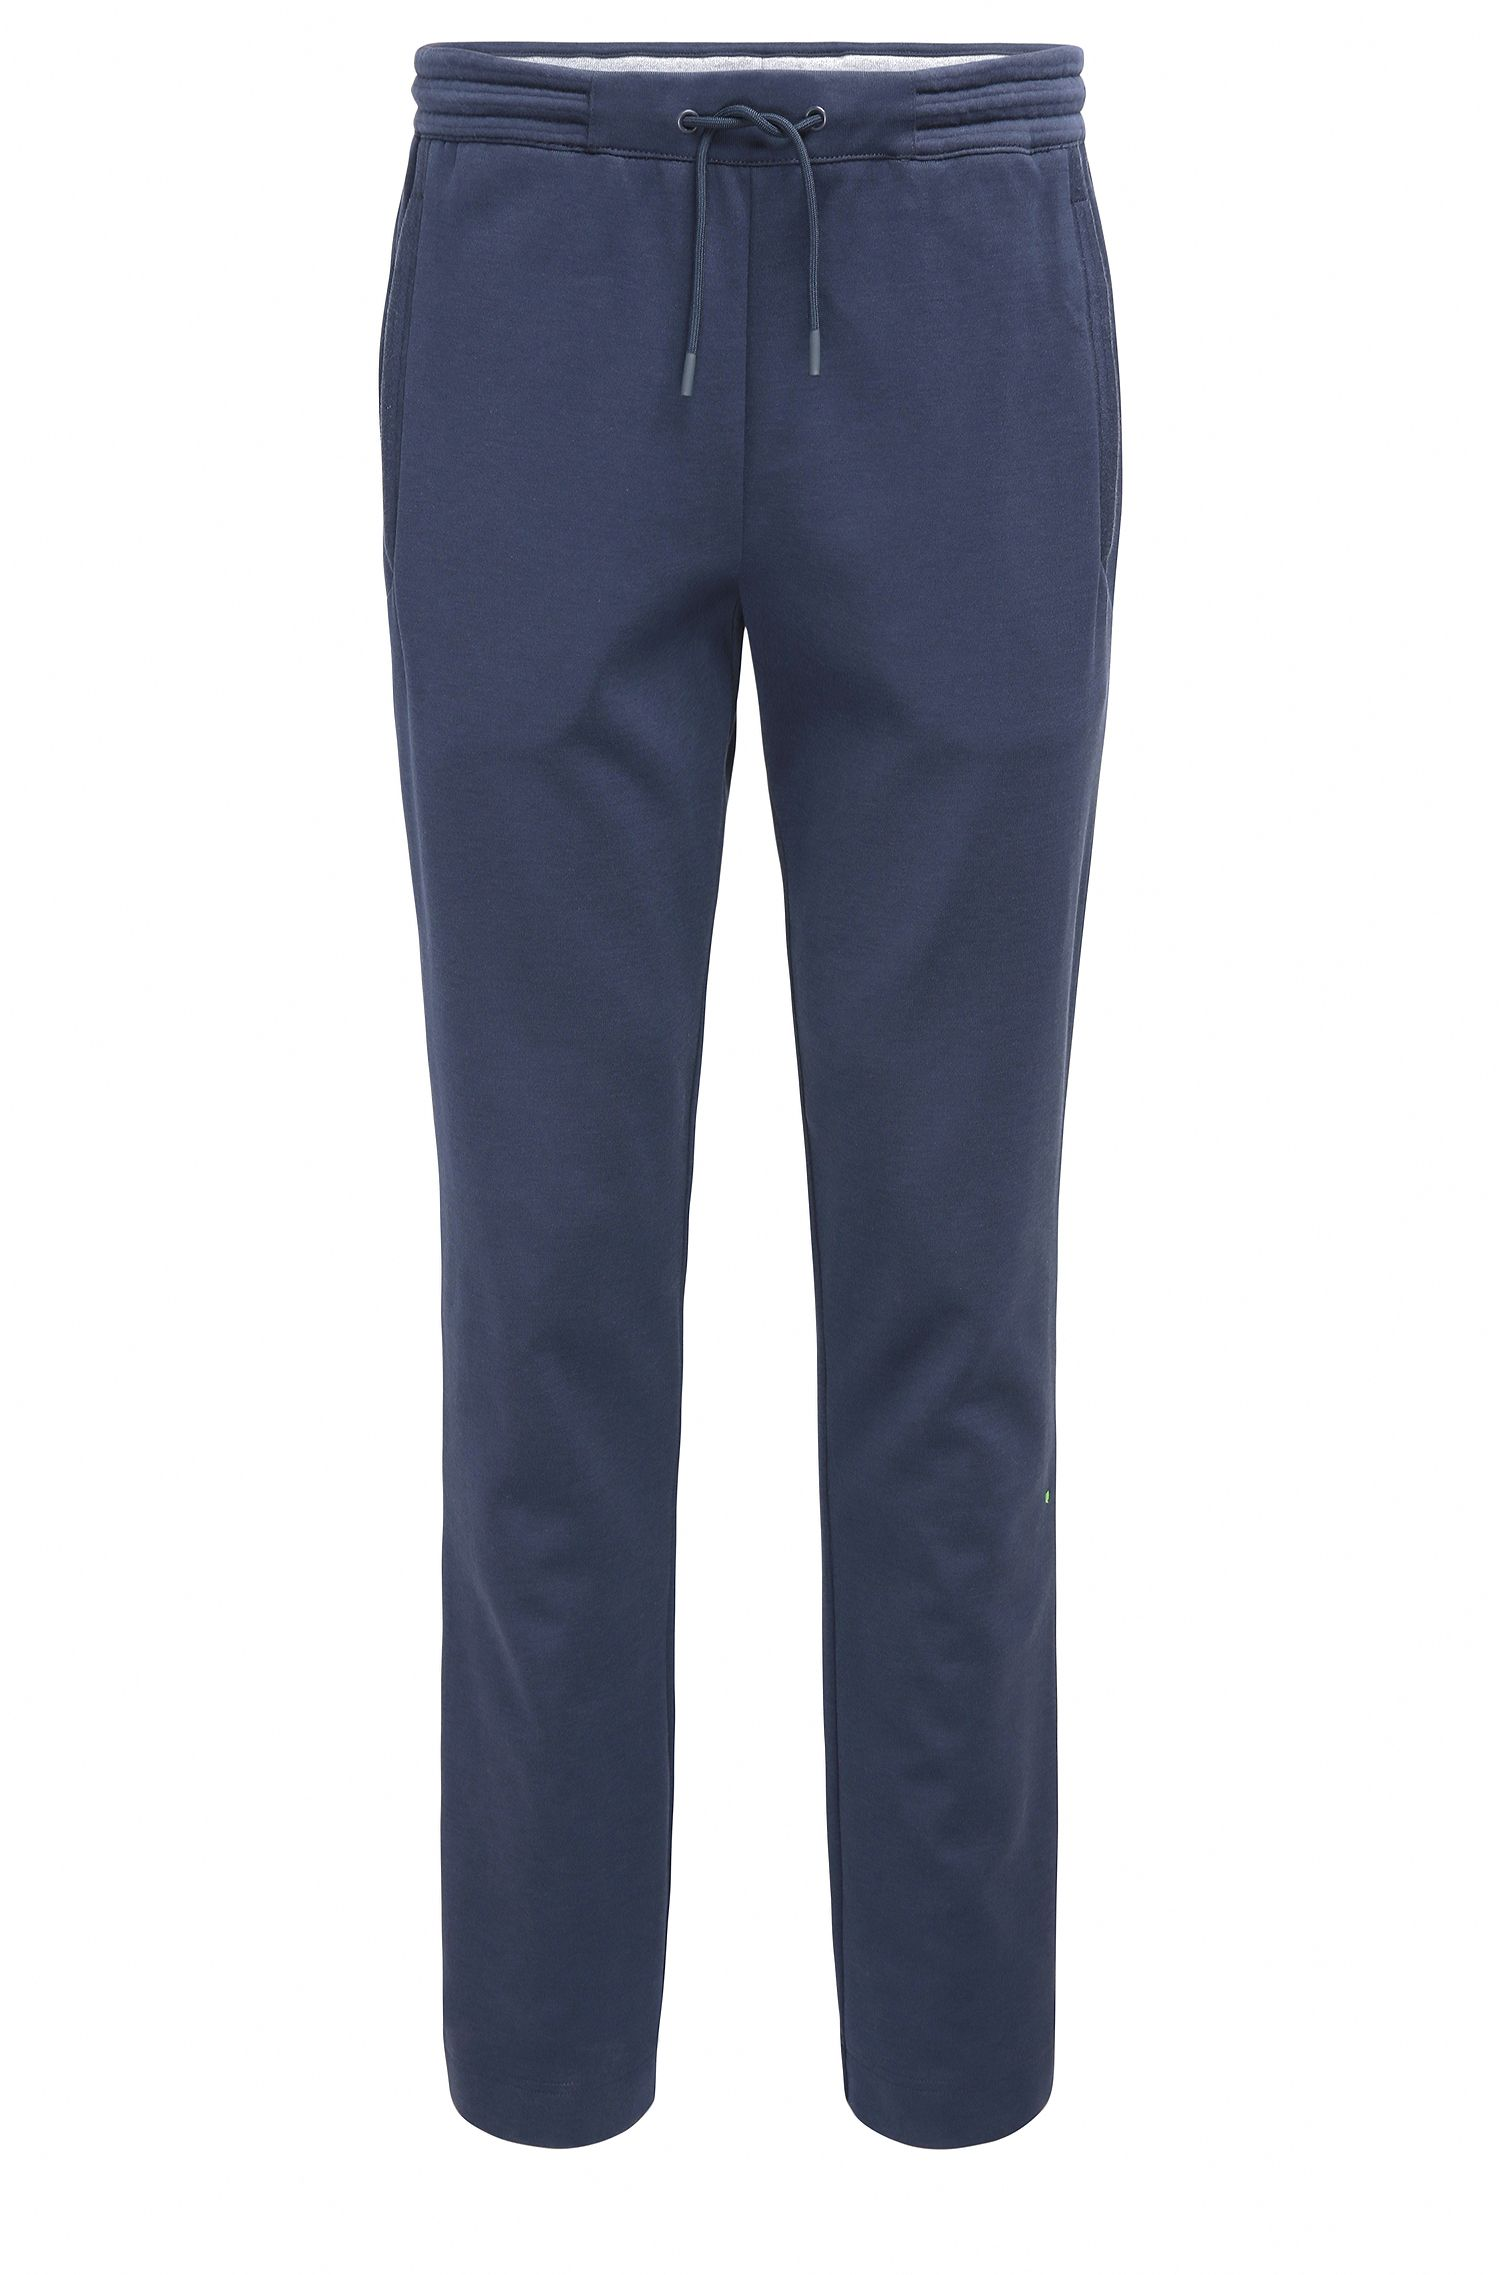 Pantaloni in cotone regular fit con orli aperti